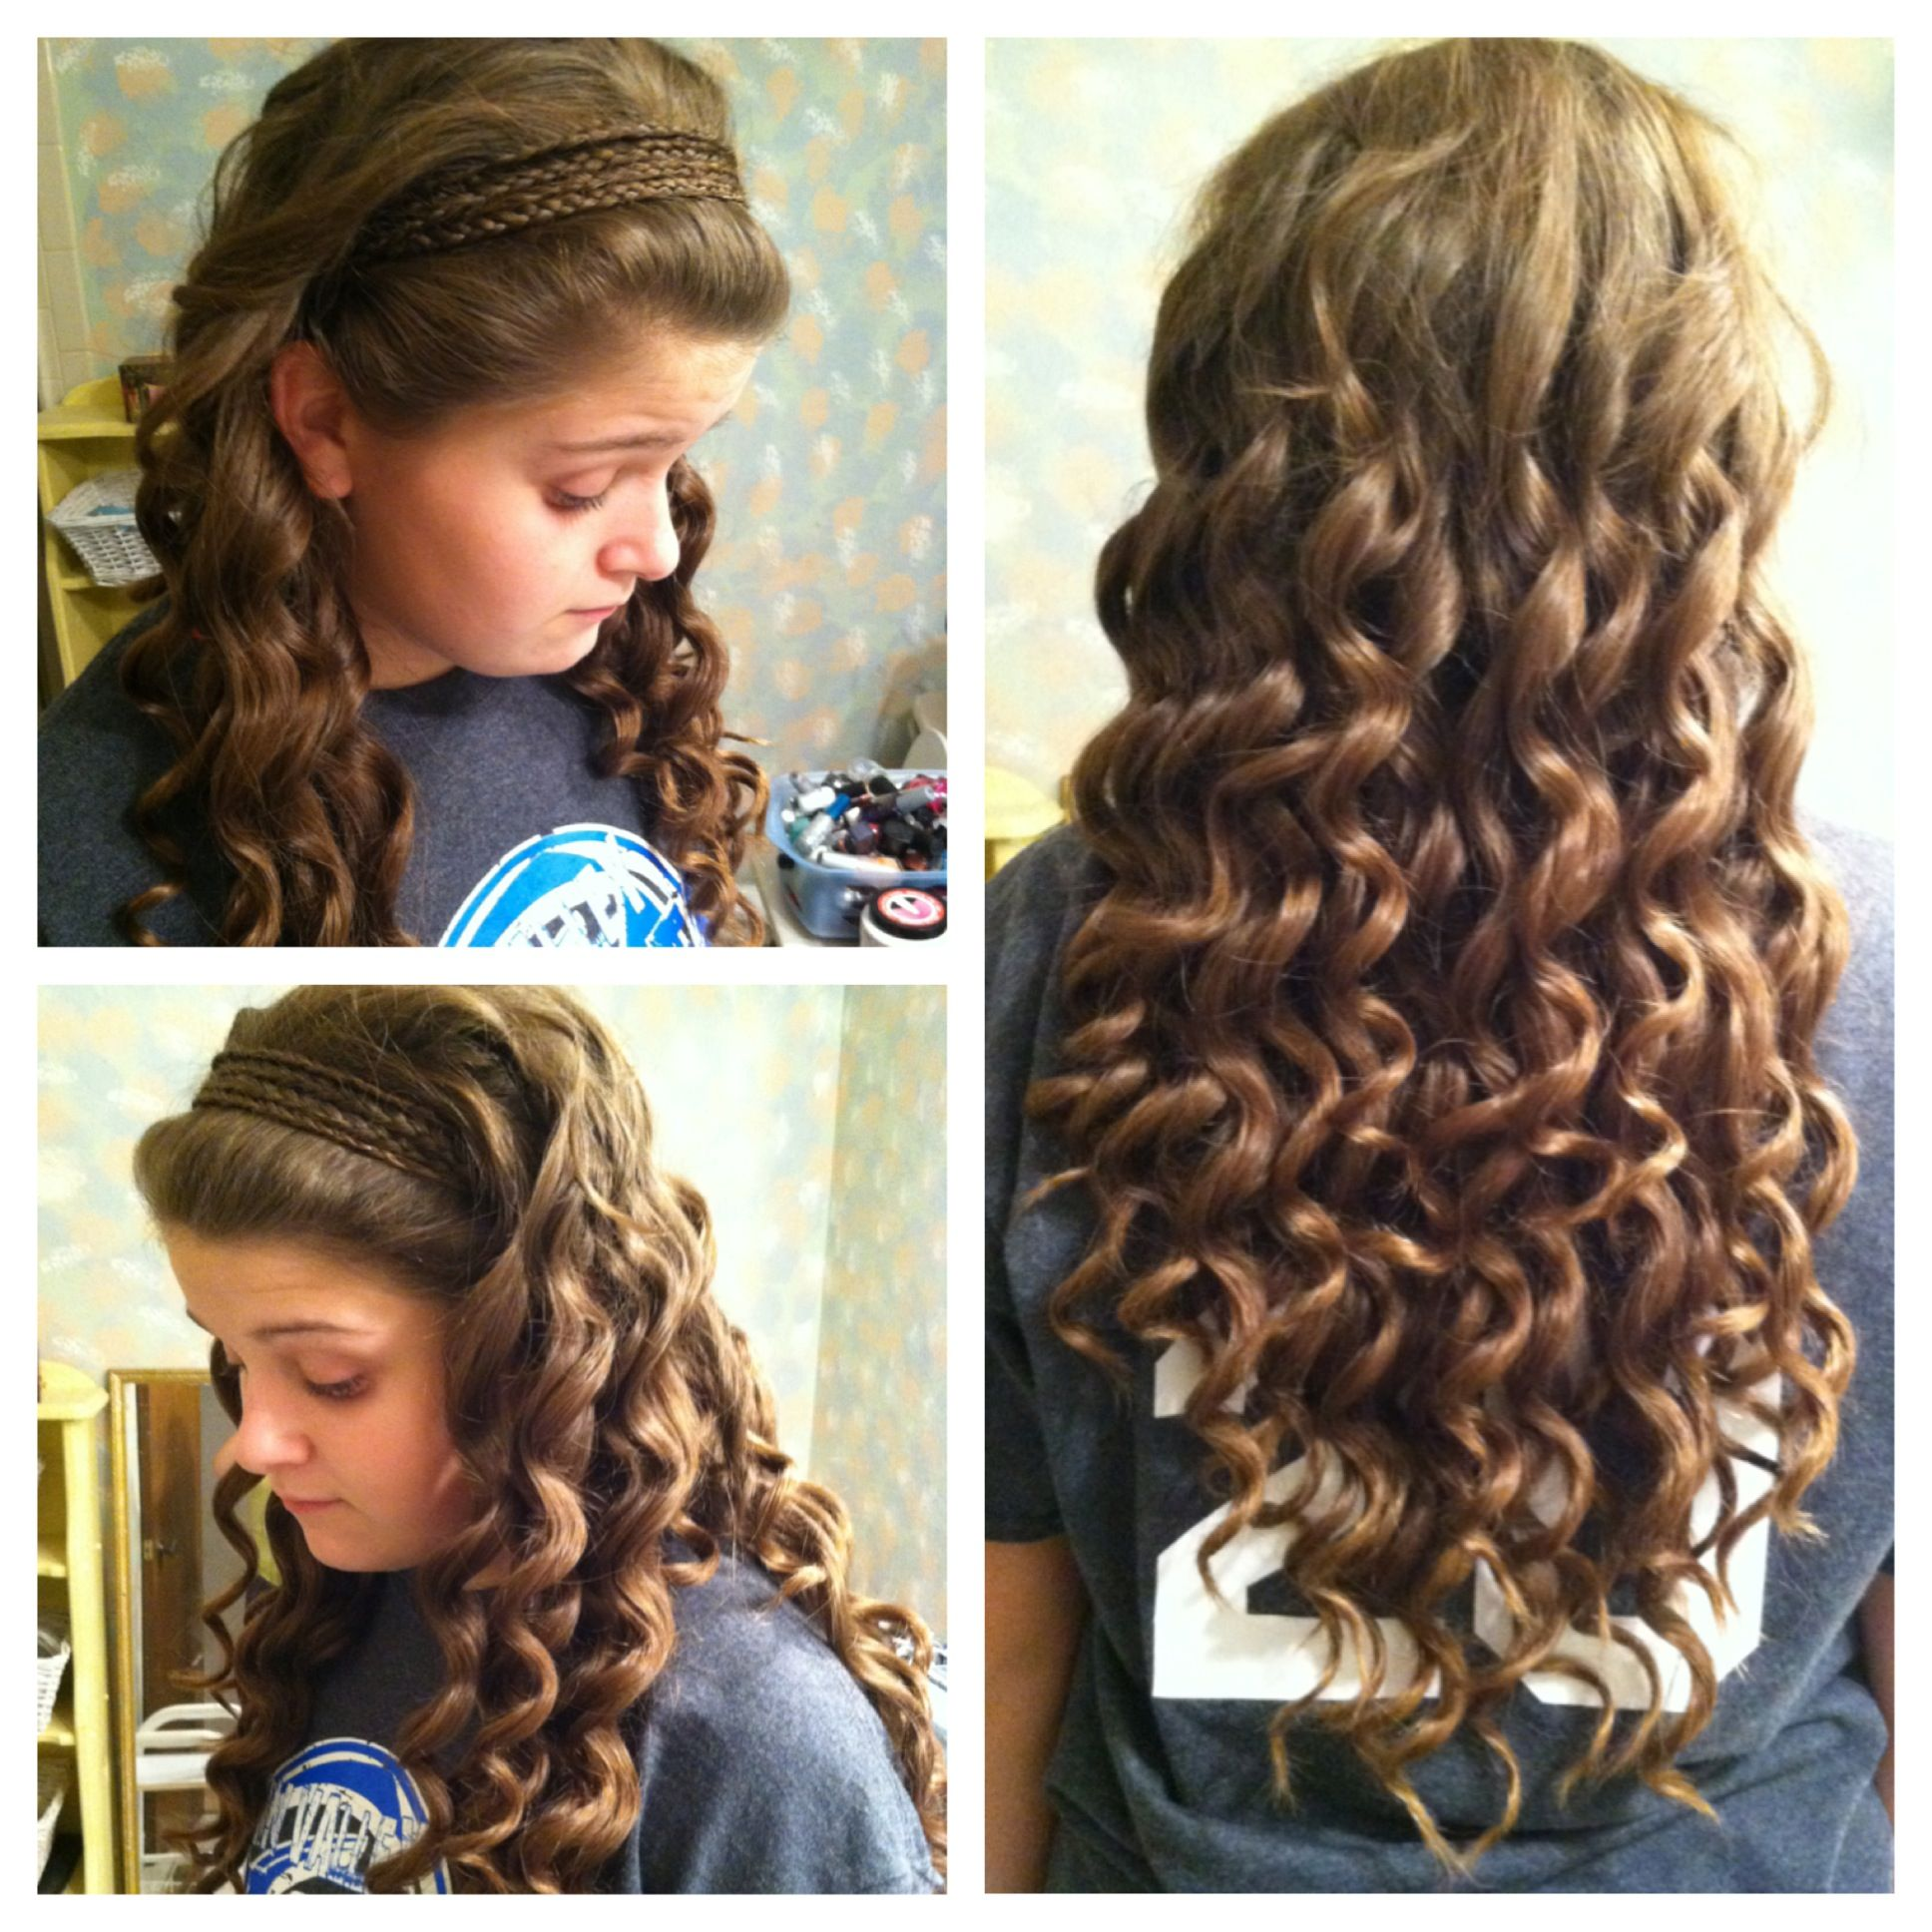 Headband Braid With Curls For Prom Www Pixshark Com